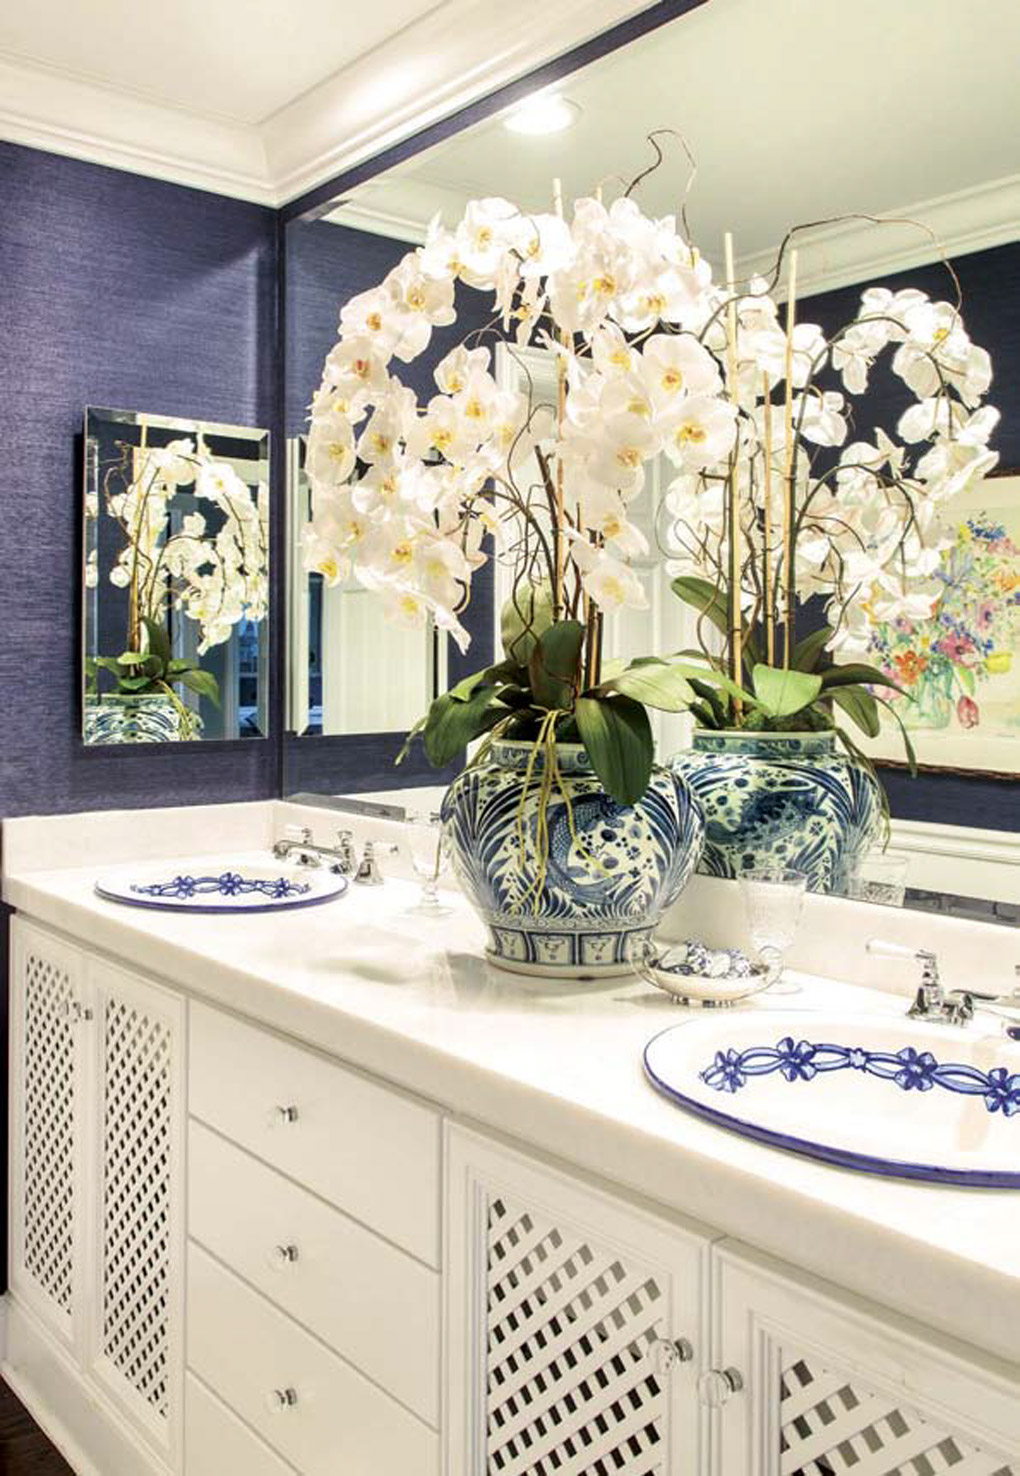 Blue and white Spanish sinks inlaid on a white double vanity in a bathroom topped with an oriental vase filled with white orchids.